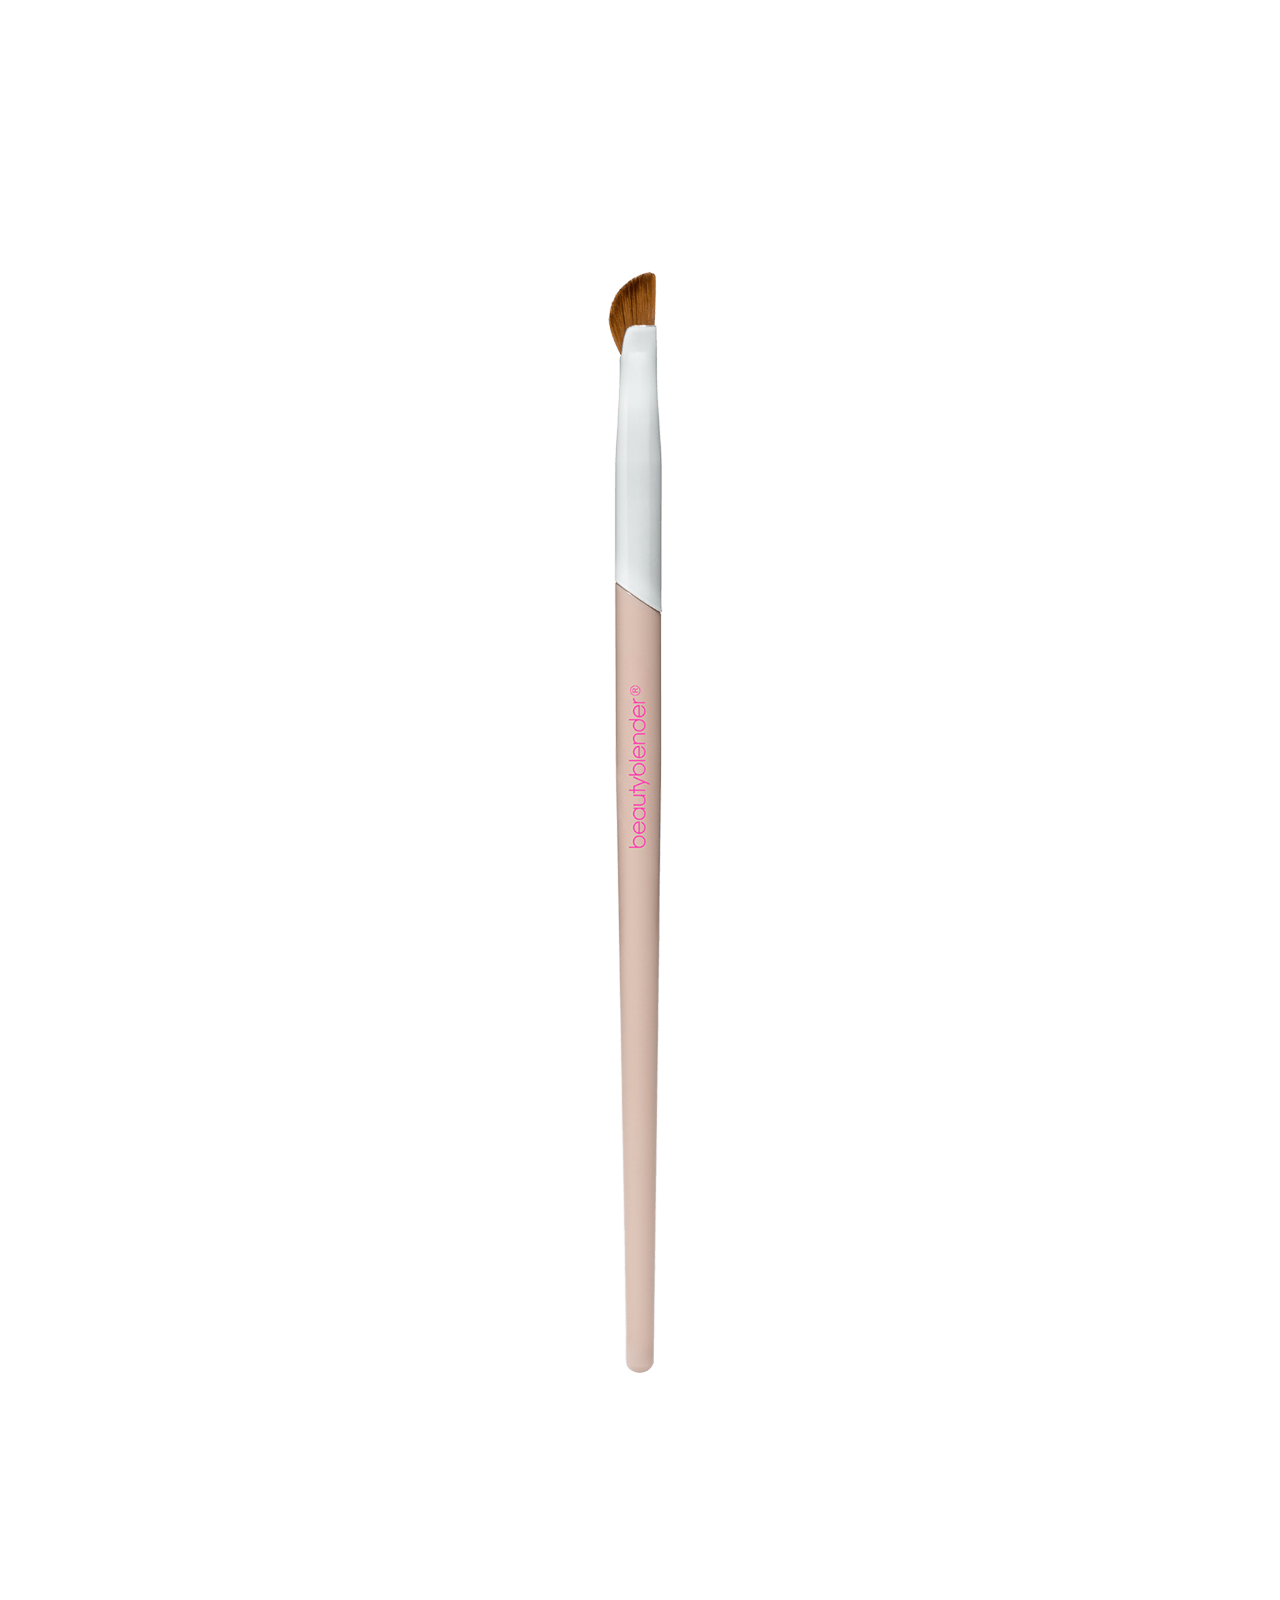 WING MAN Curved Eyeliner Brush by Beautyblender